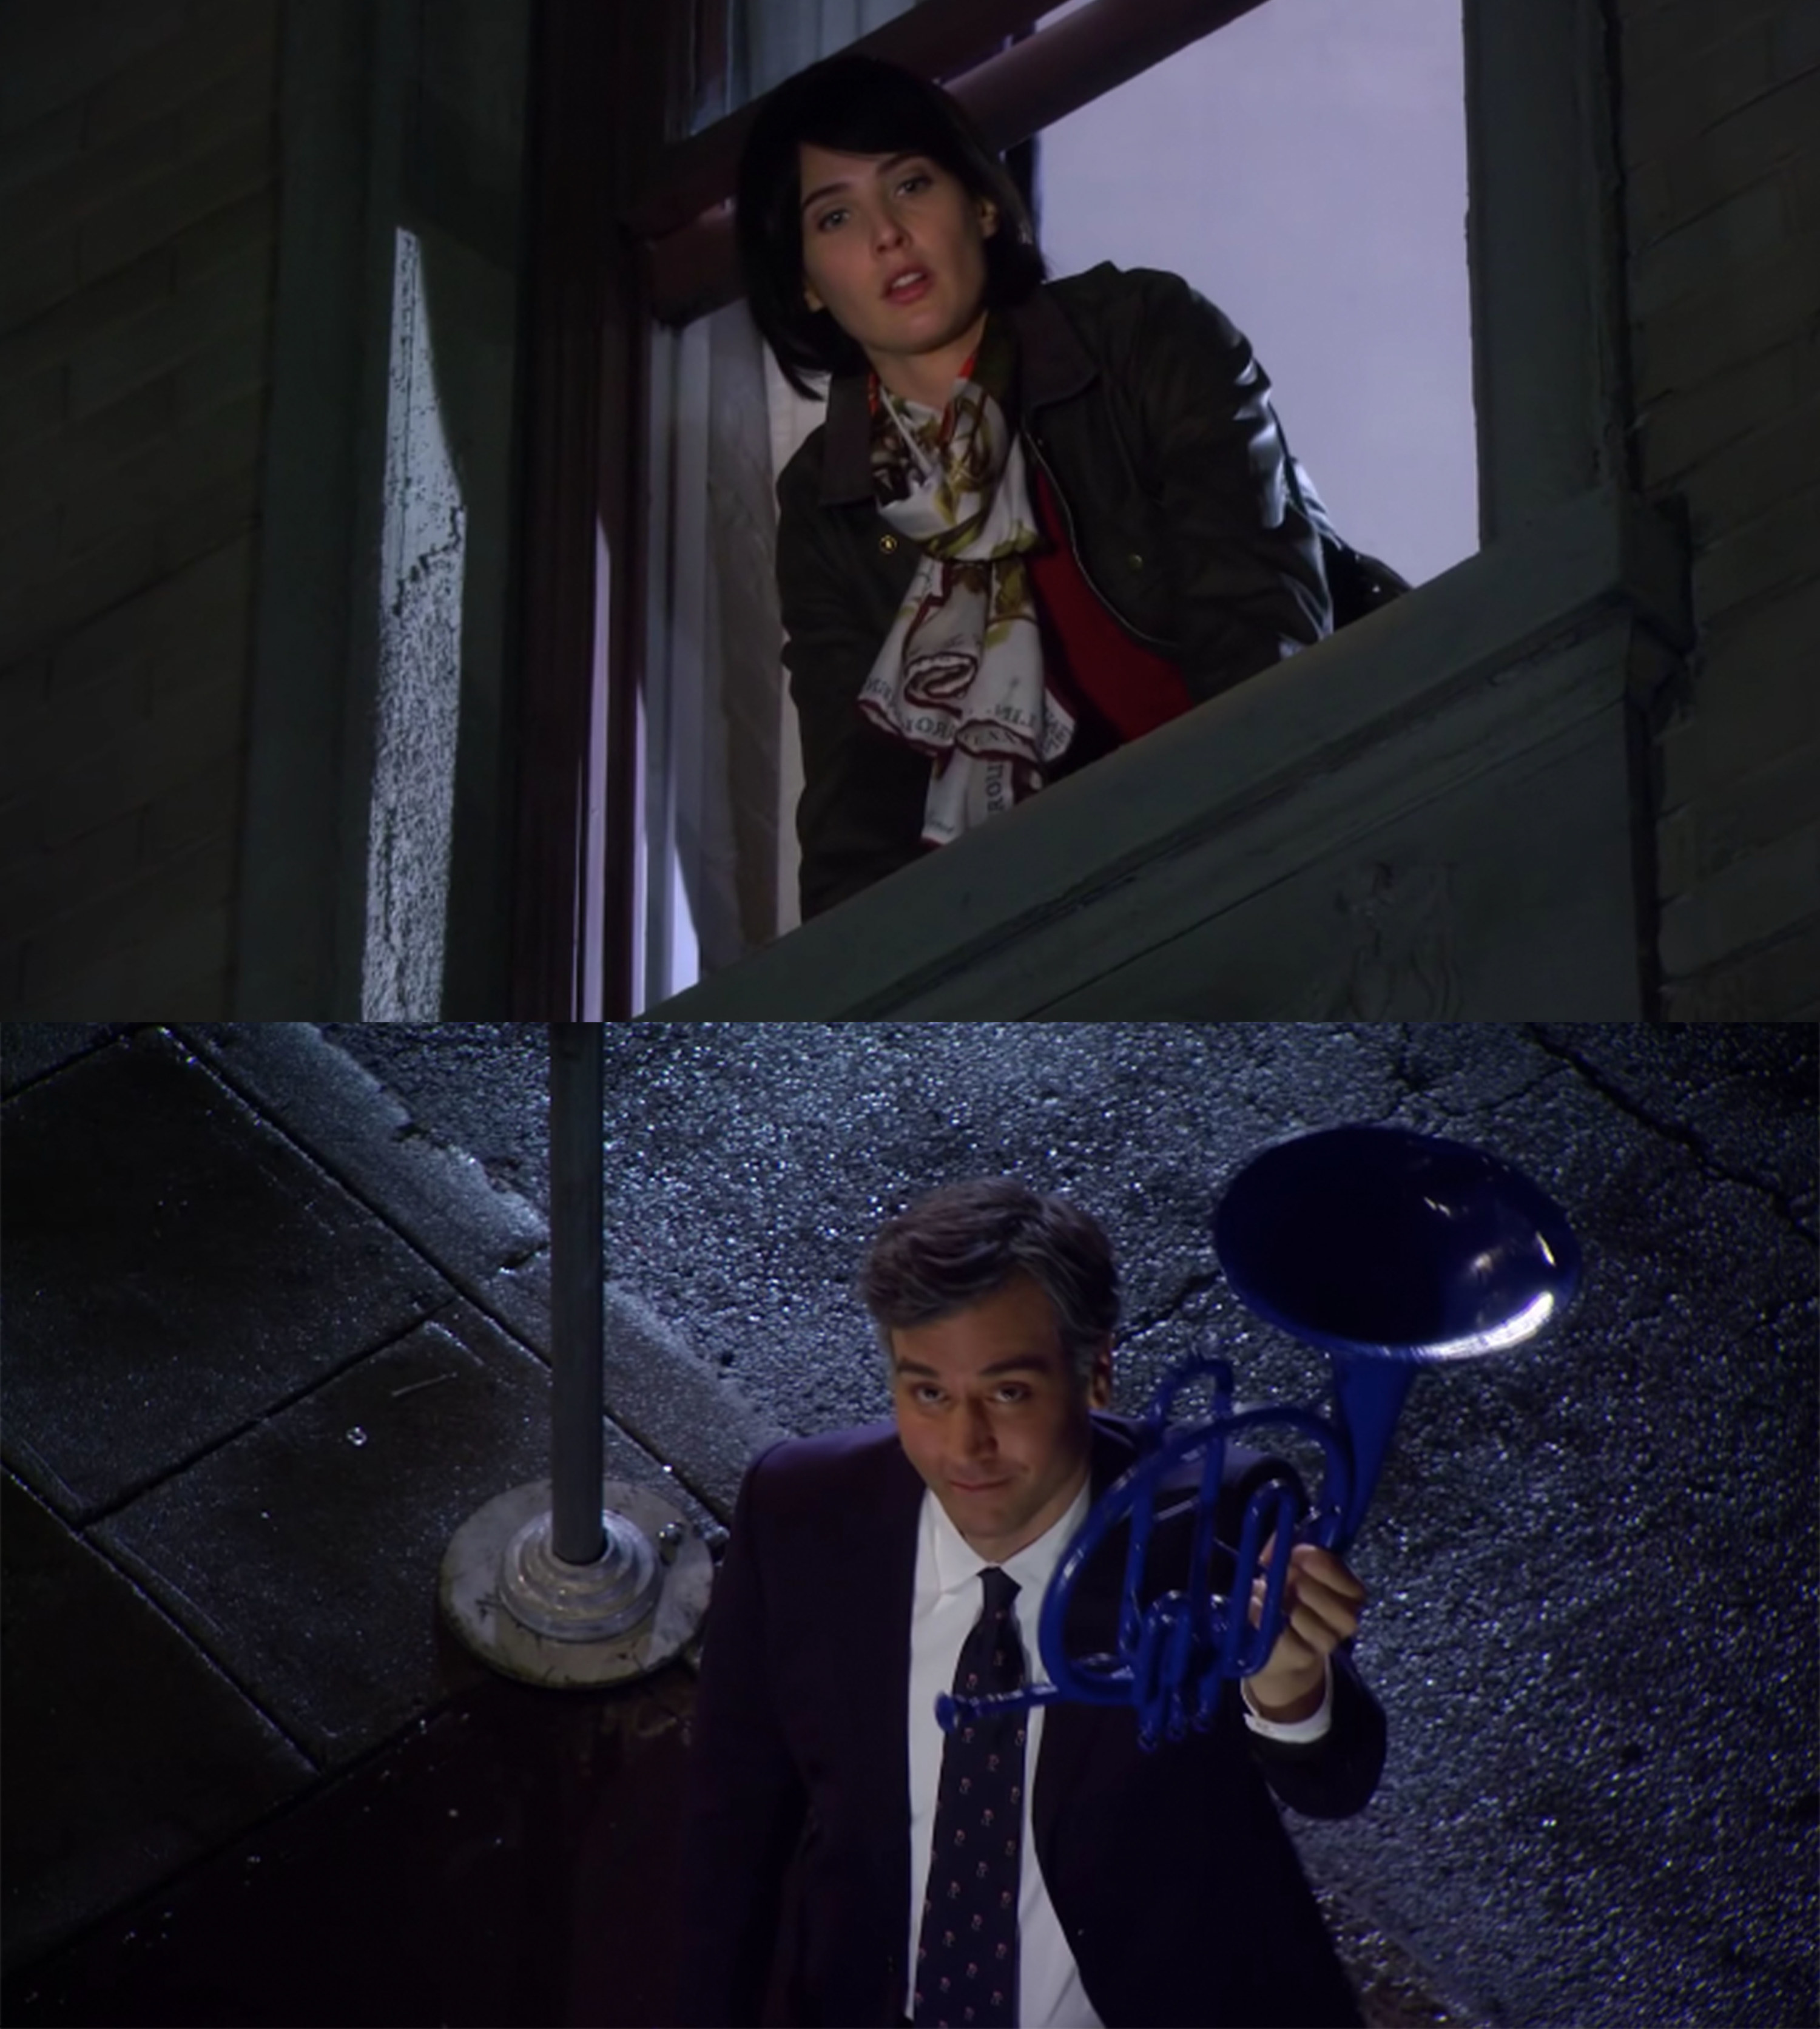 Ted shows up at Robin's window with French horn in the finale